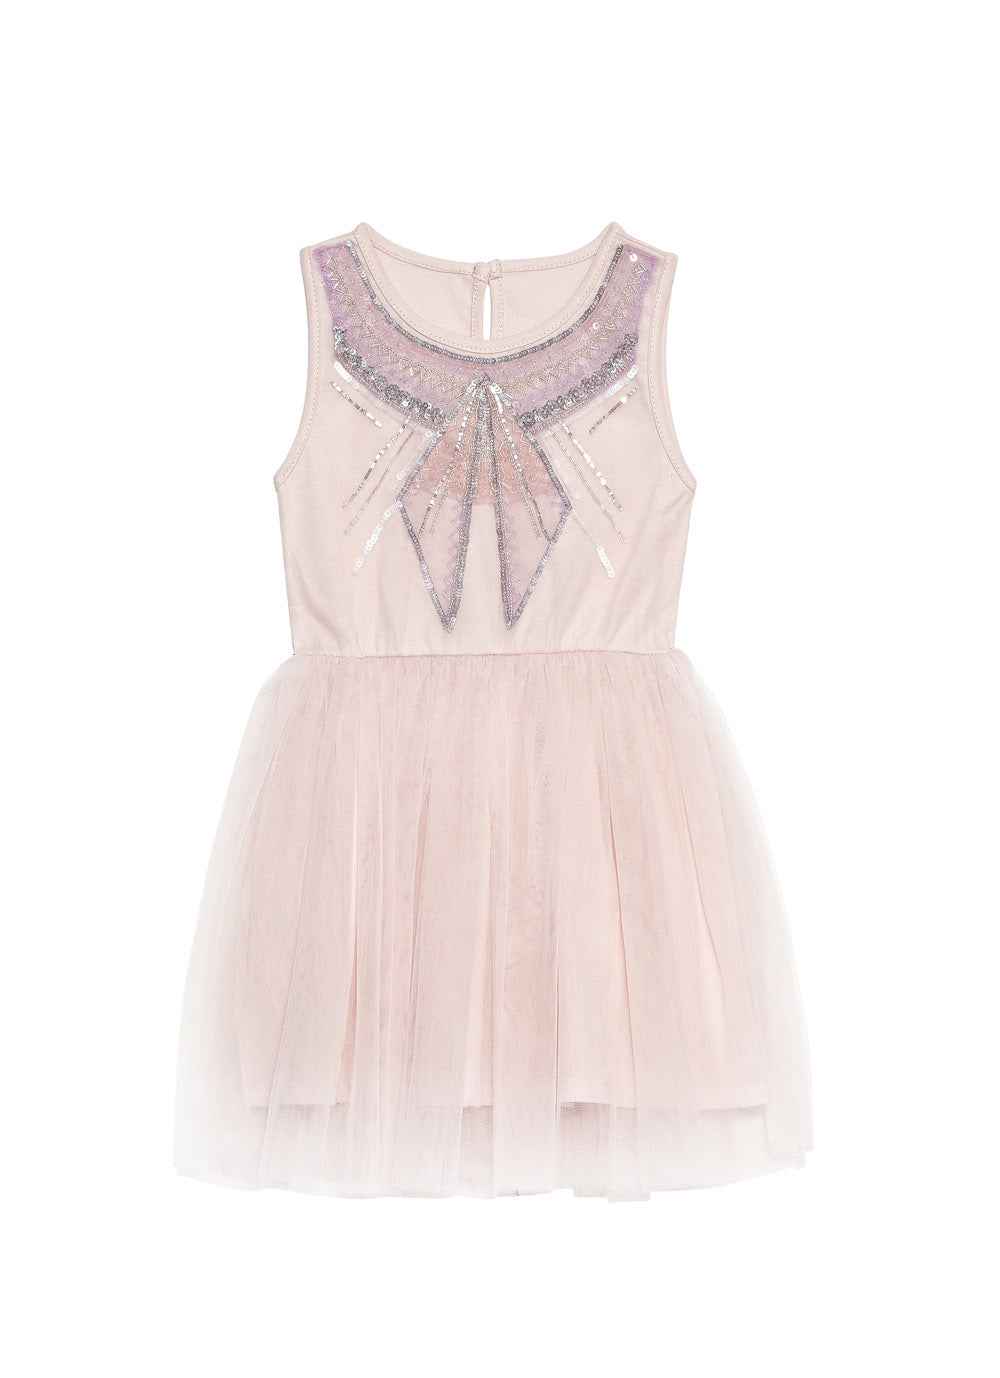 TUTU DU MONDE - Little Miss Violet Tutu Dress / Lychee